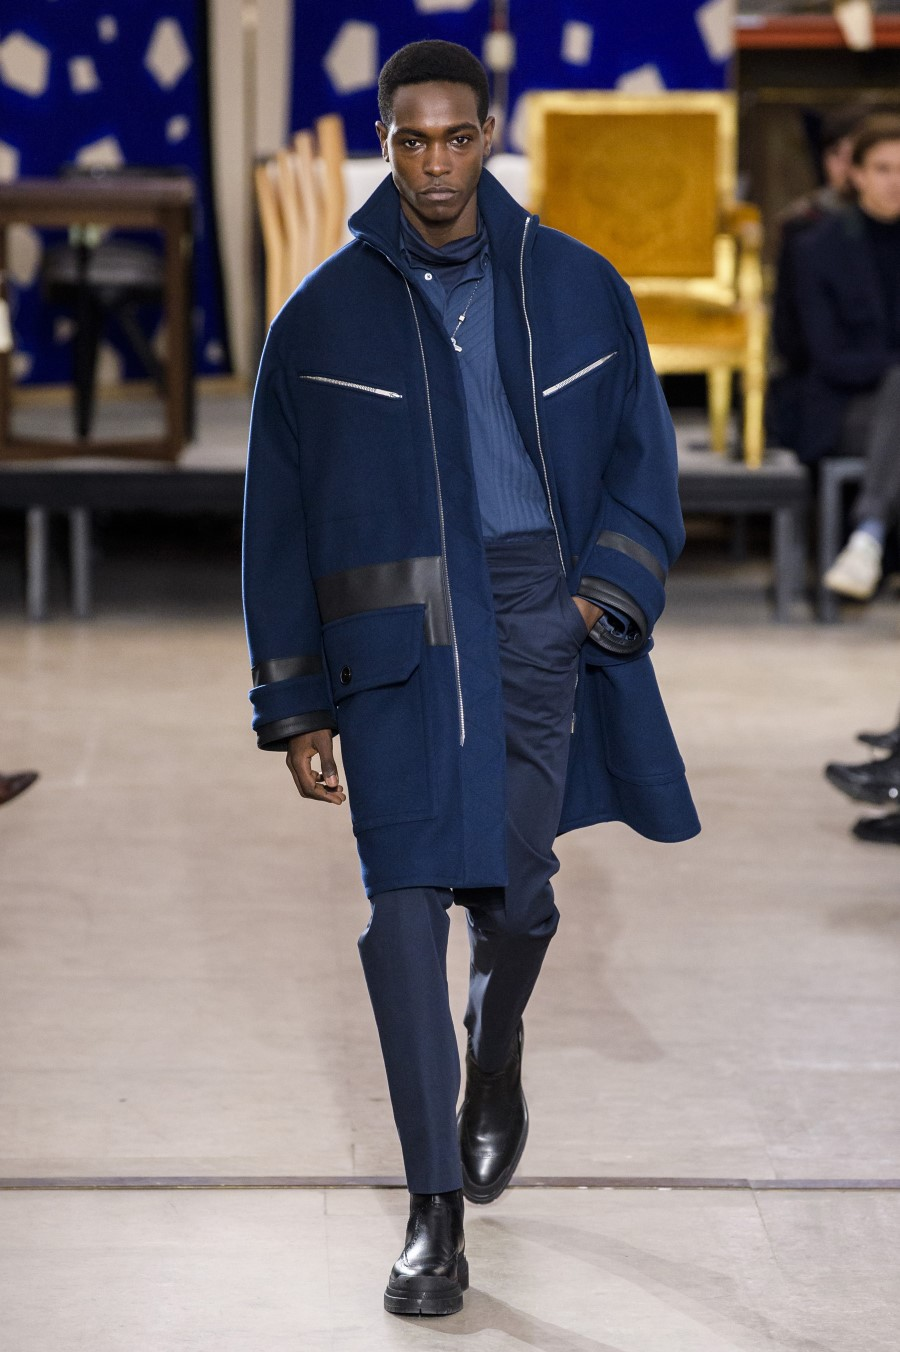 Hermès Men's Fall Winter 2019 - Paris Fashion Week